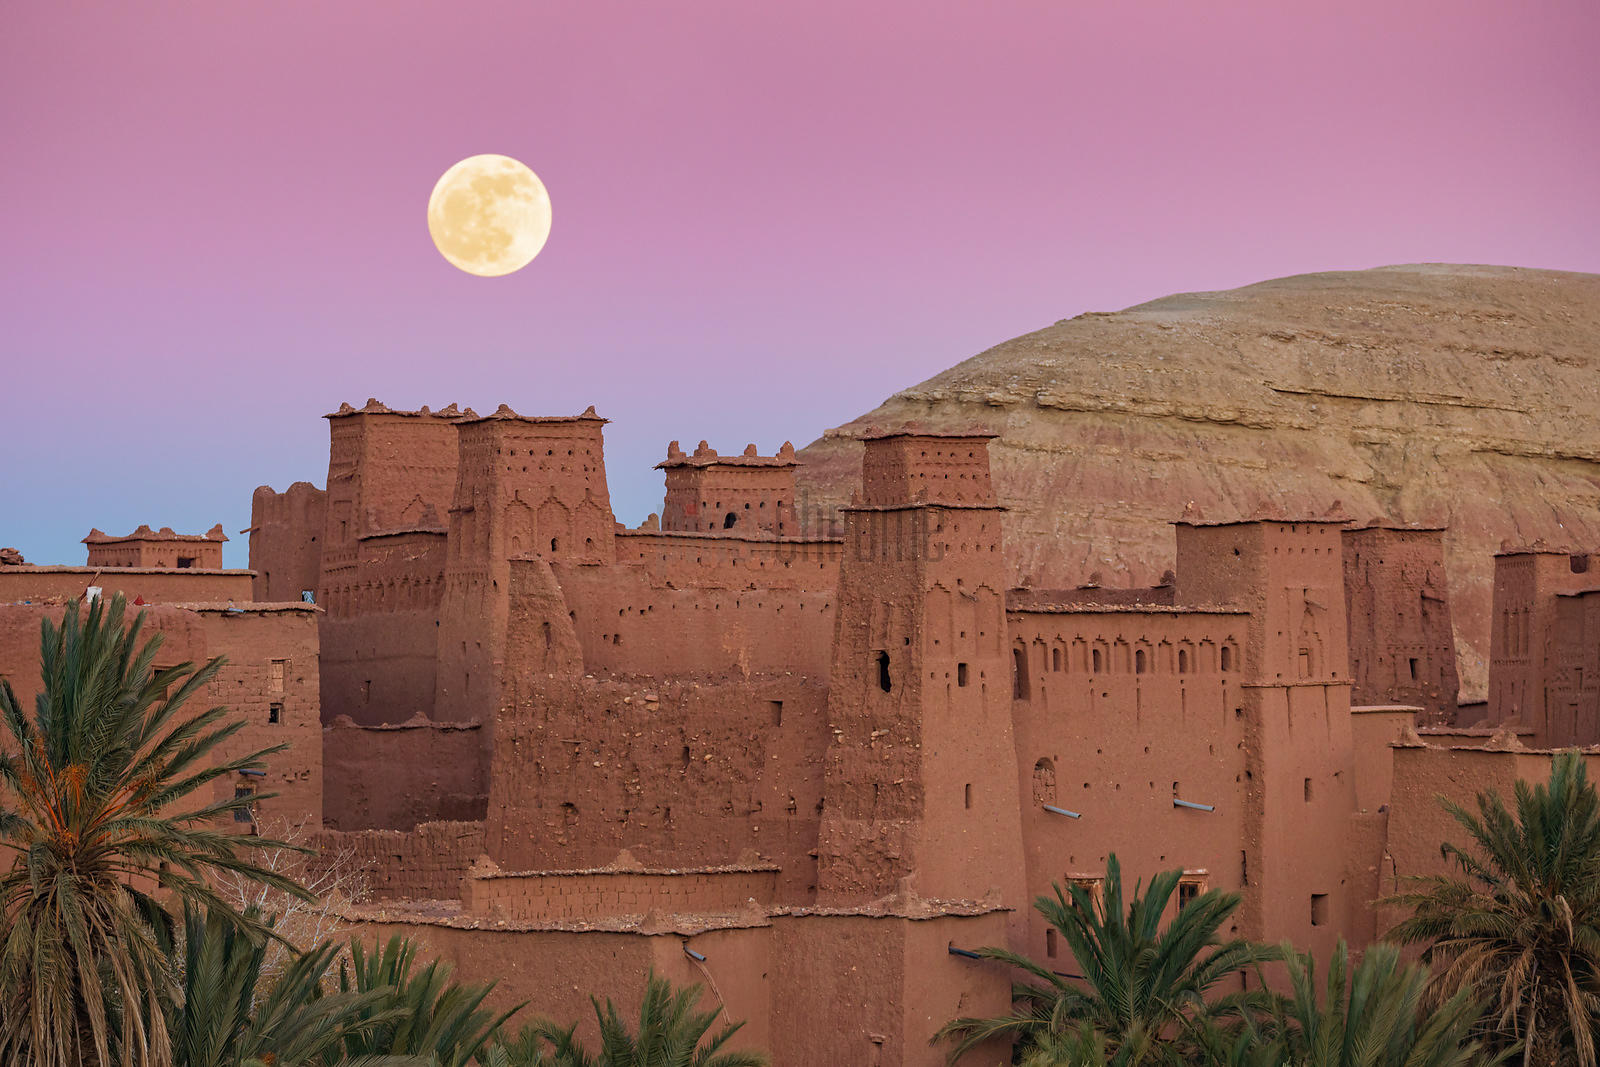 Last Full Moon of 2019 at the Ksar of Ait Ben Haddou